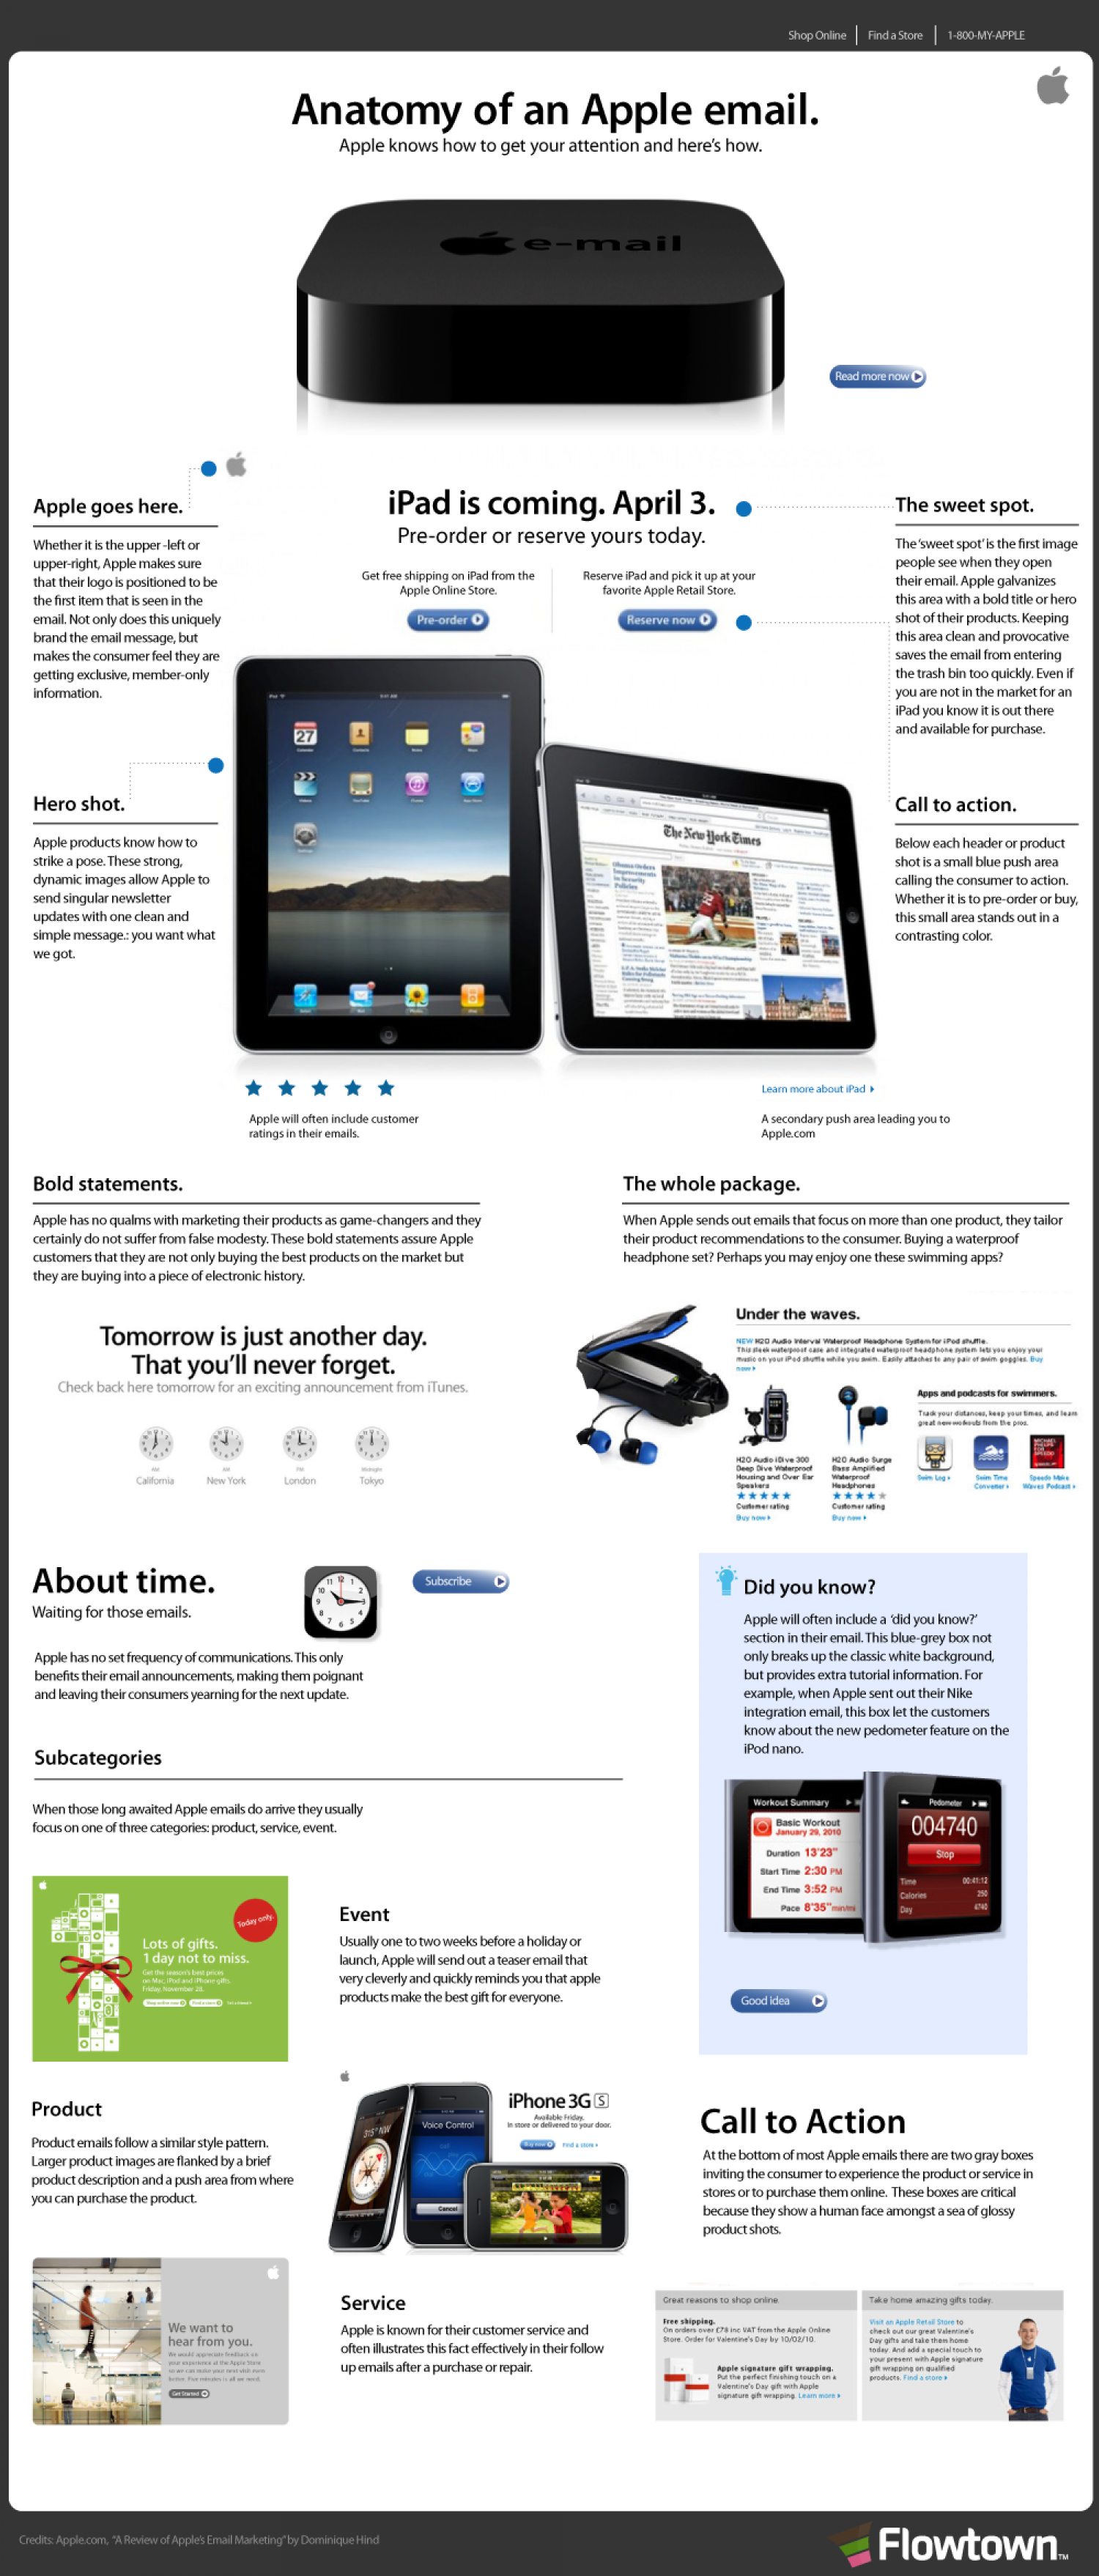 Anatomy of An Apple Email  Infographic